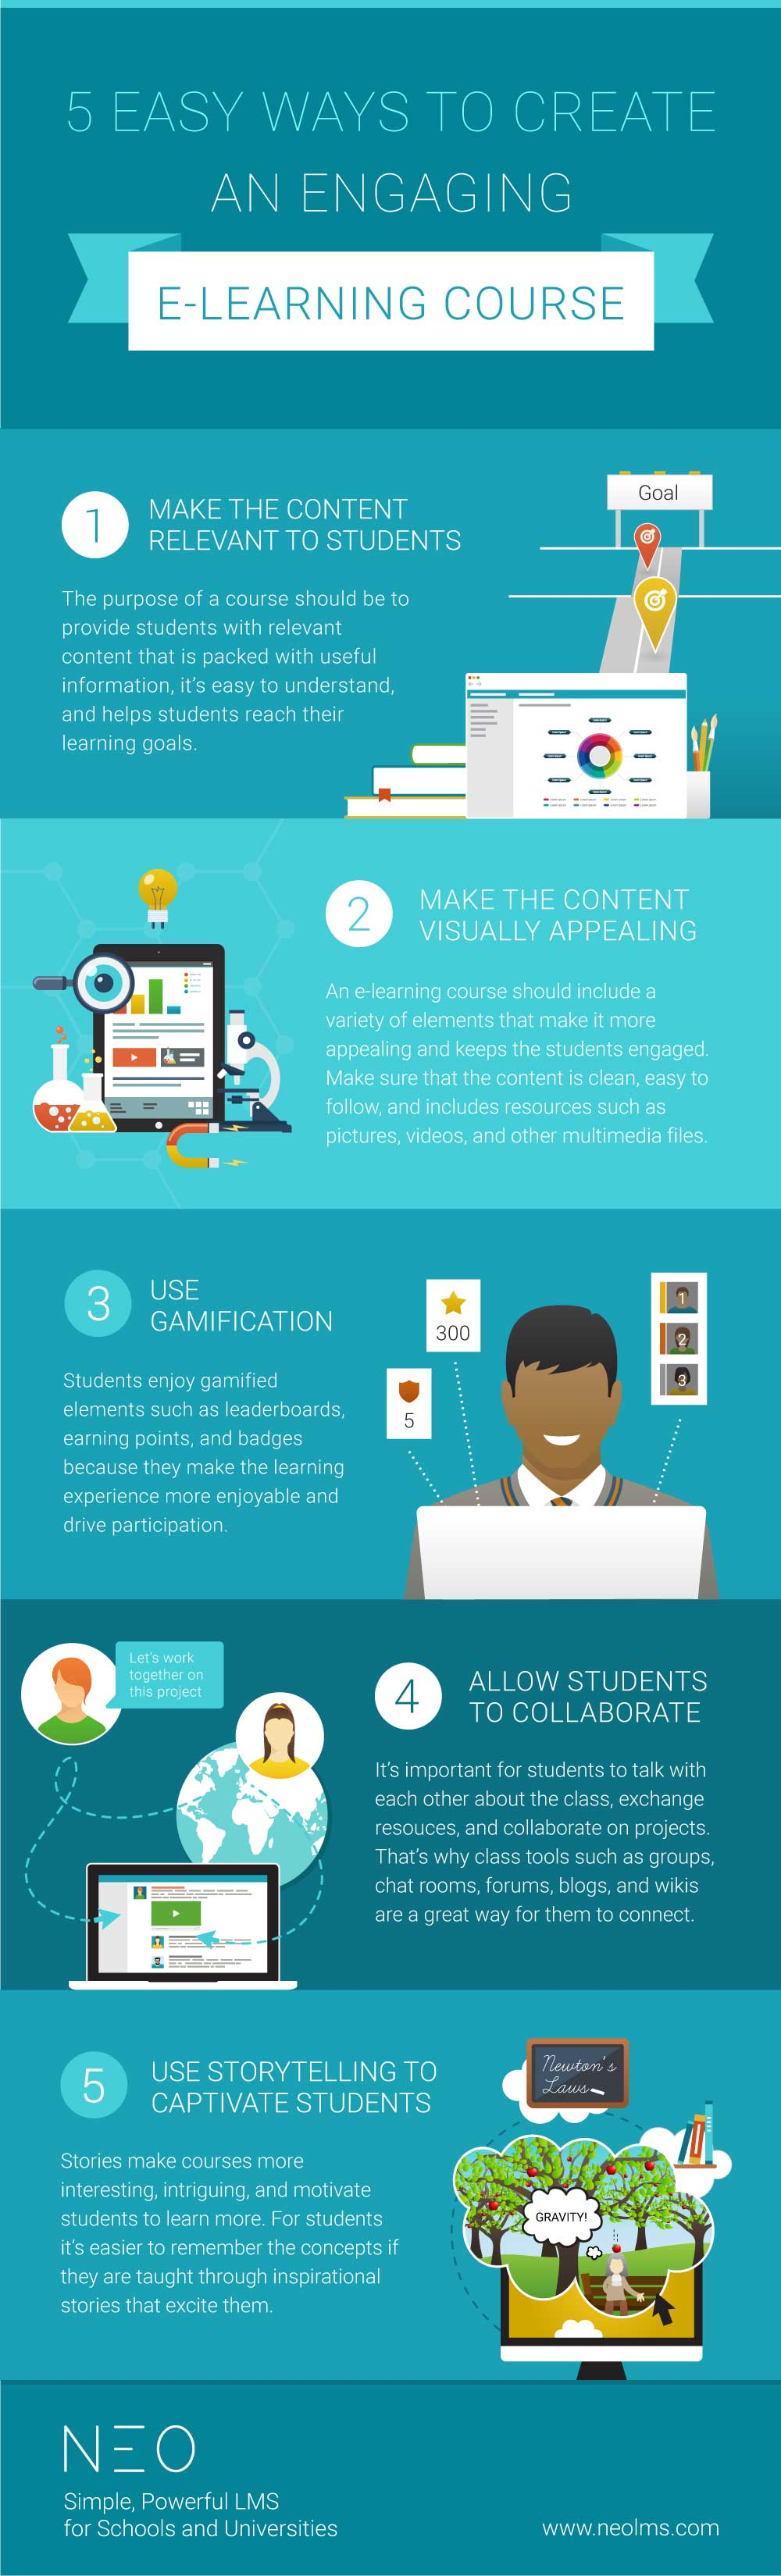 [Infographic] 5 Easy Ways to Create an Engaging Online Course